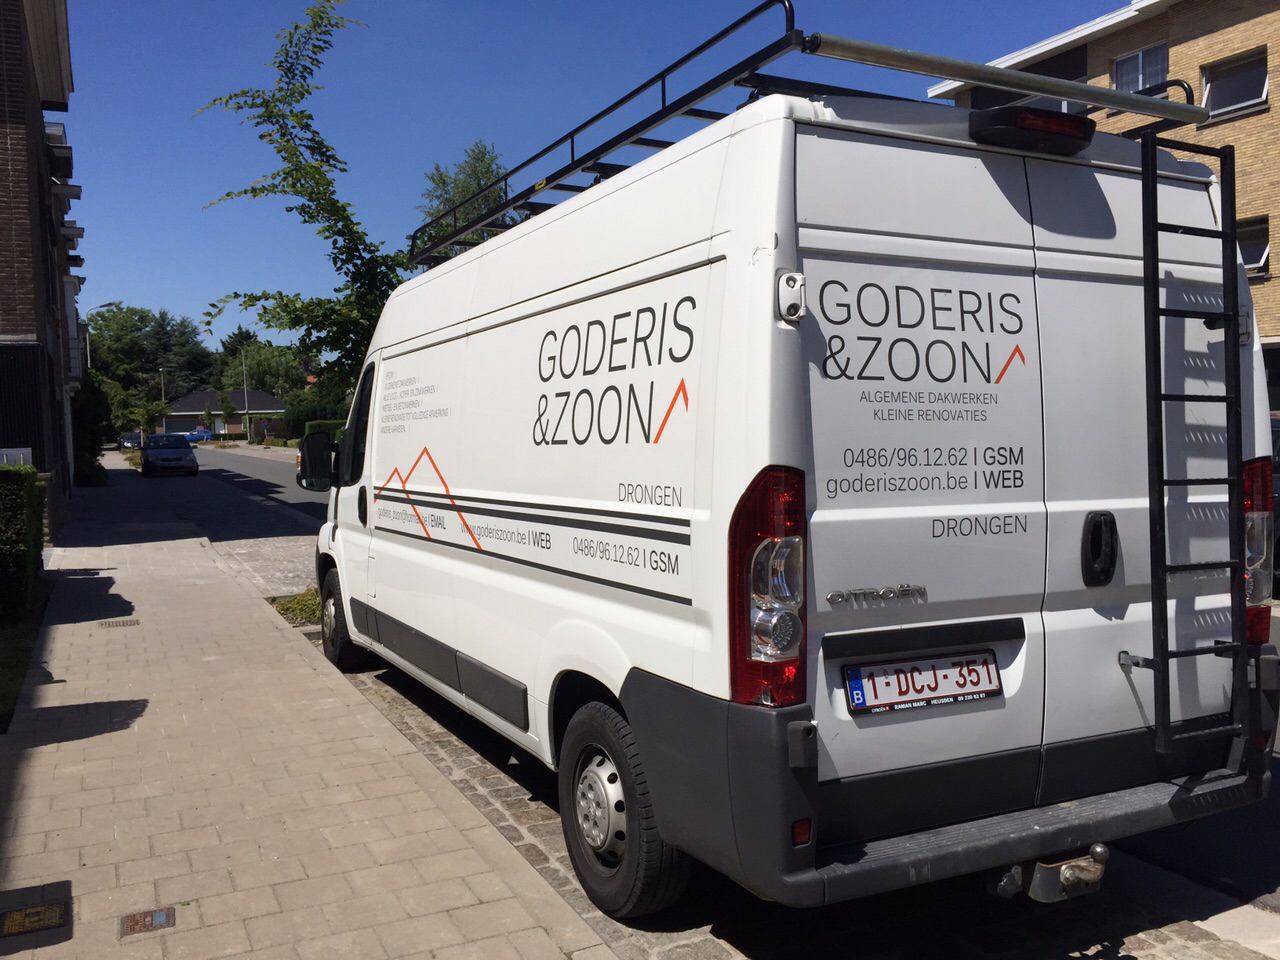 goderis_zoon_camionette1_lr